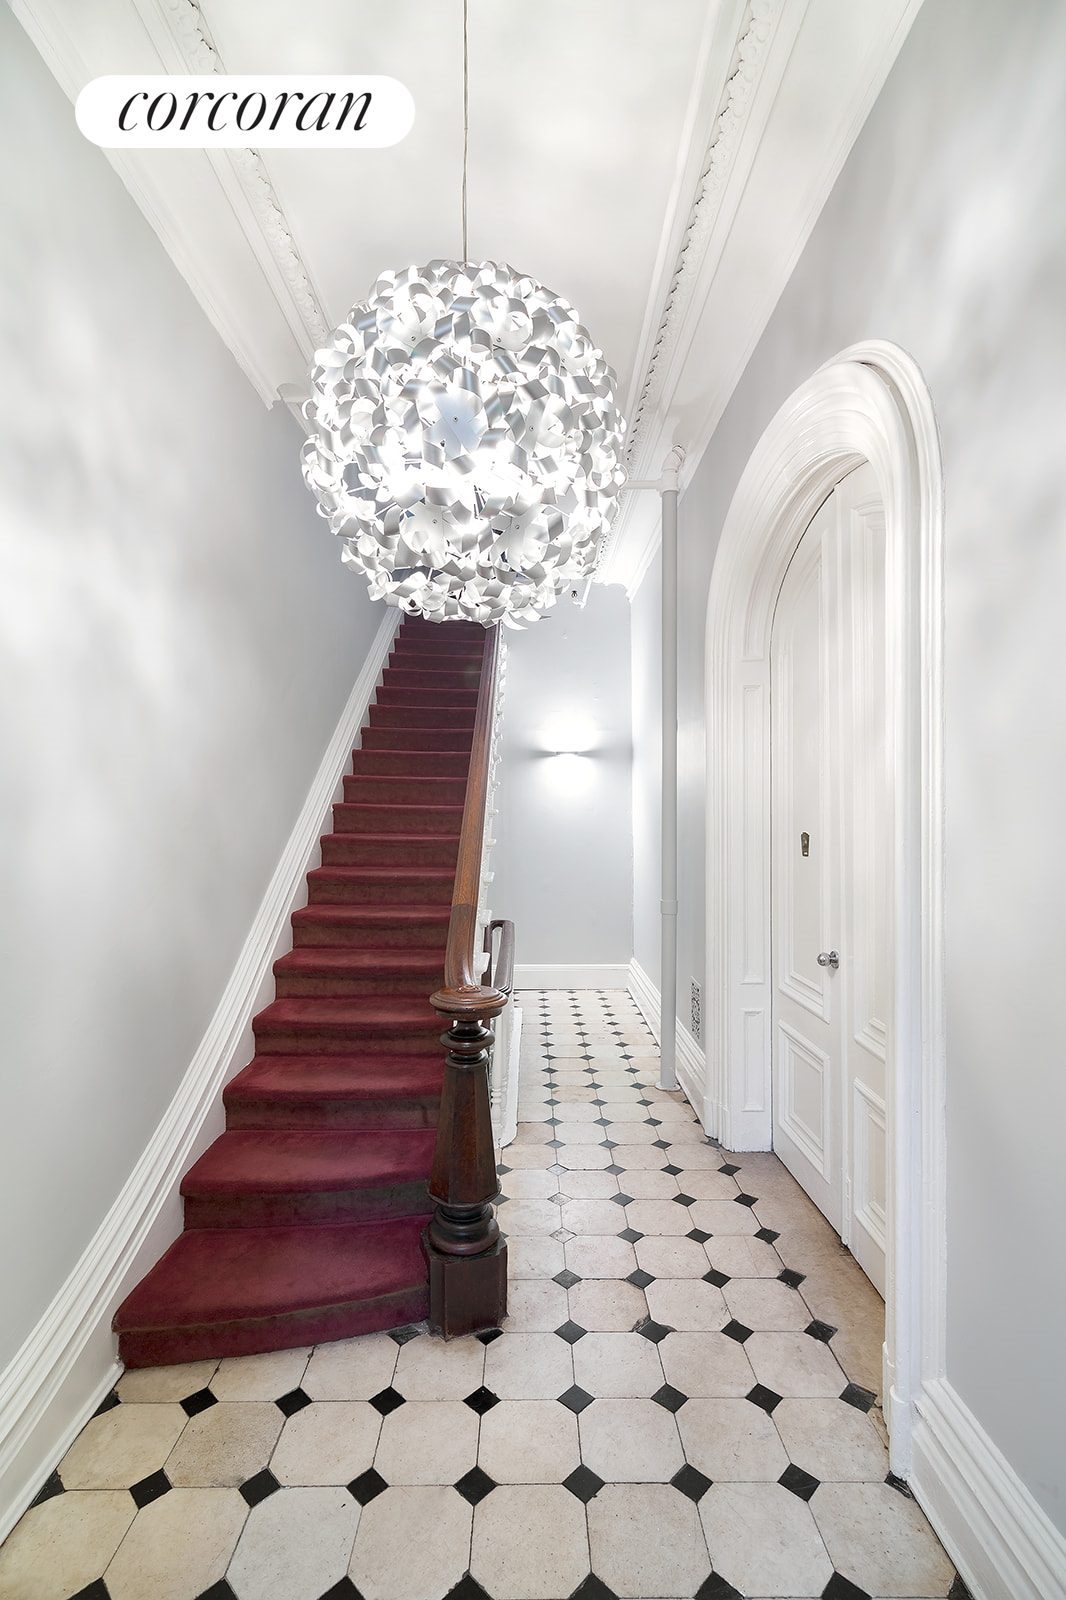 65 South Oxford Street, 2, Stunning Parlor Floor